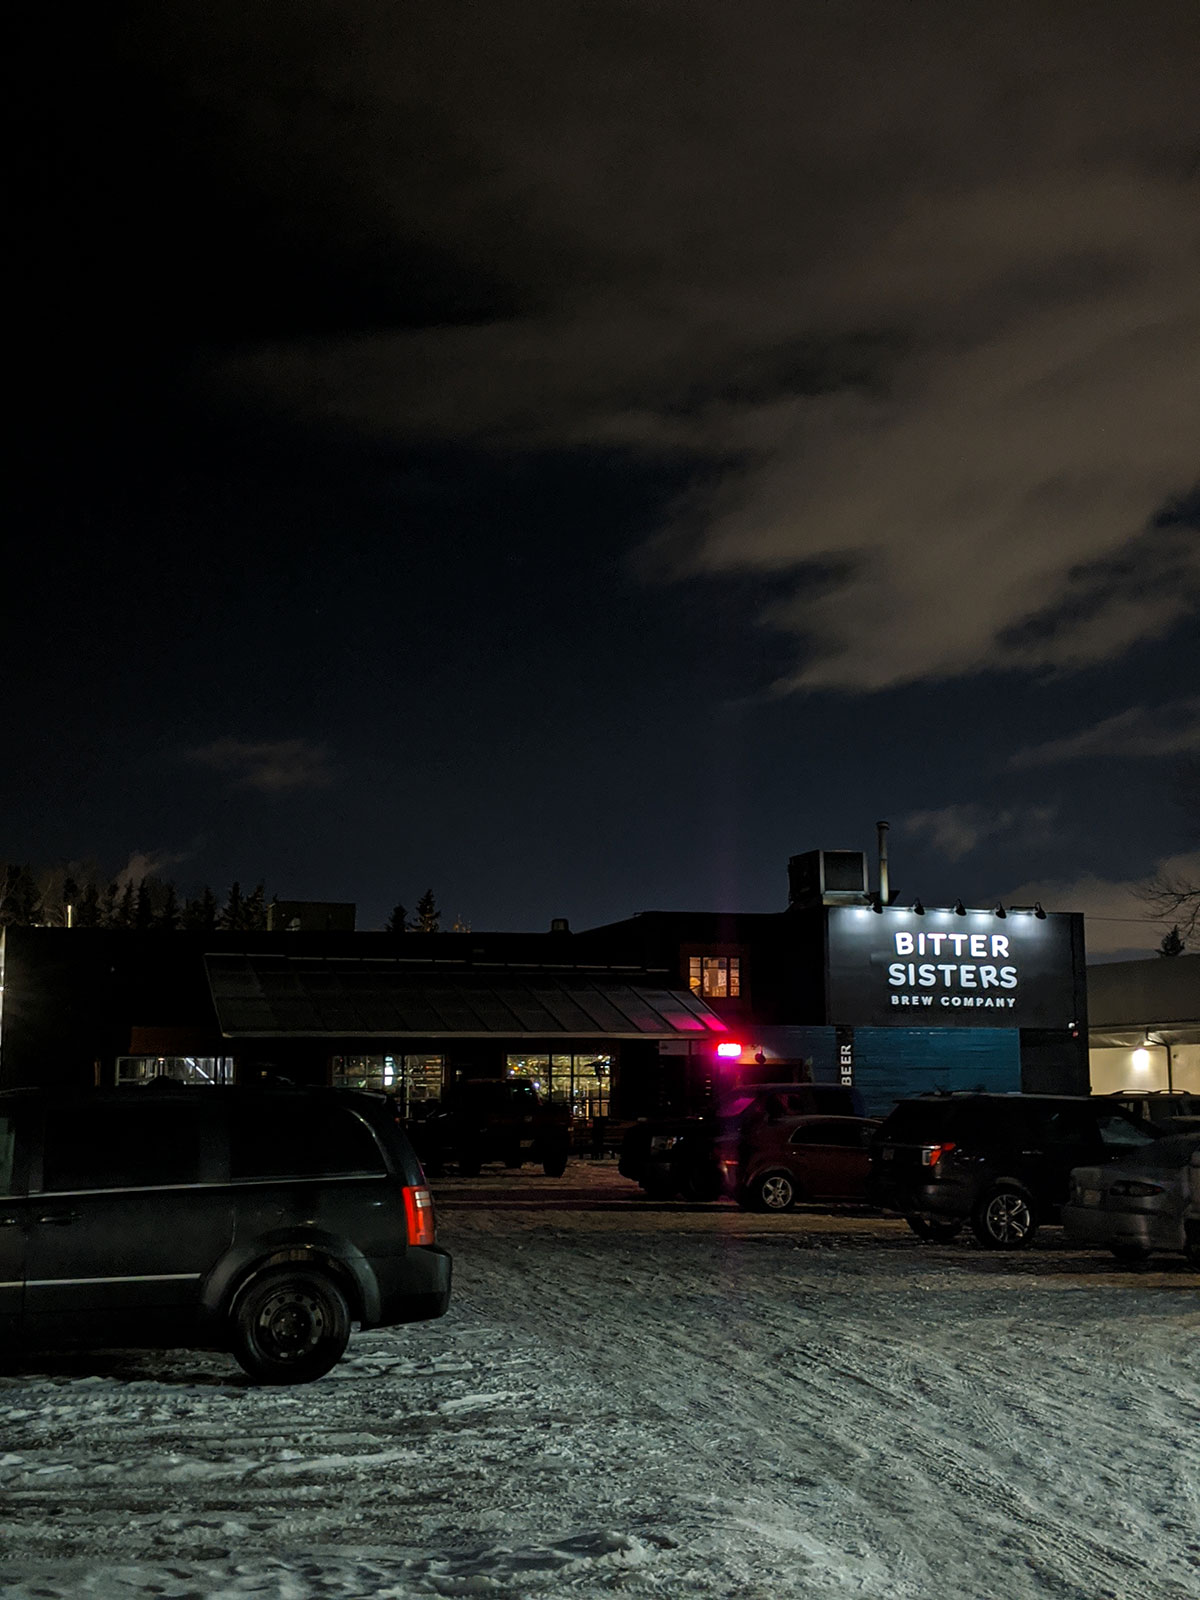 outside Bitter Sisters Brewing Company at night during winter